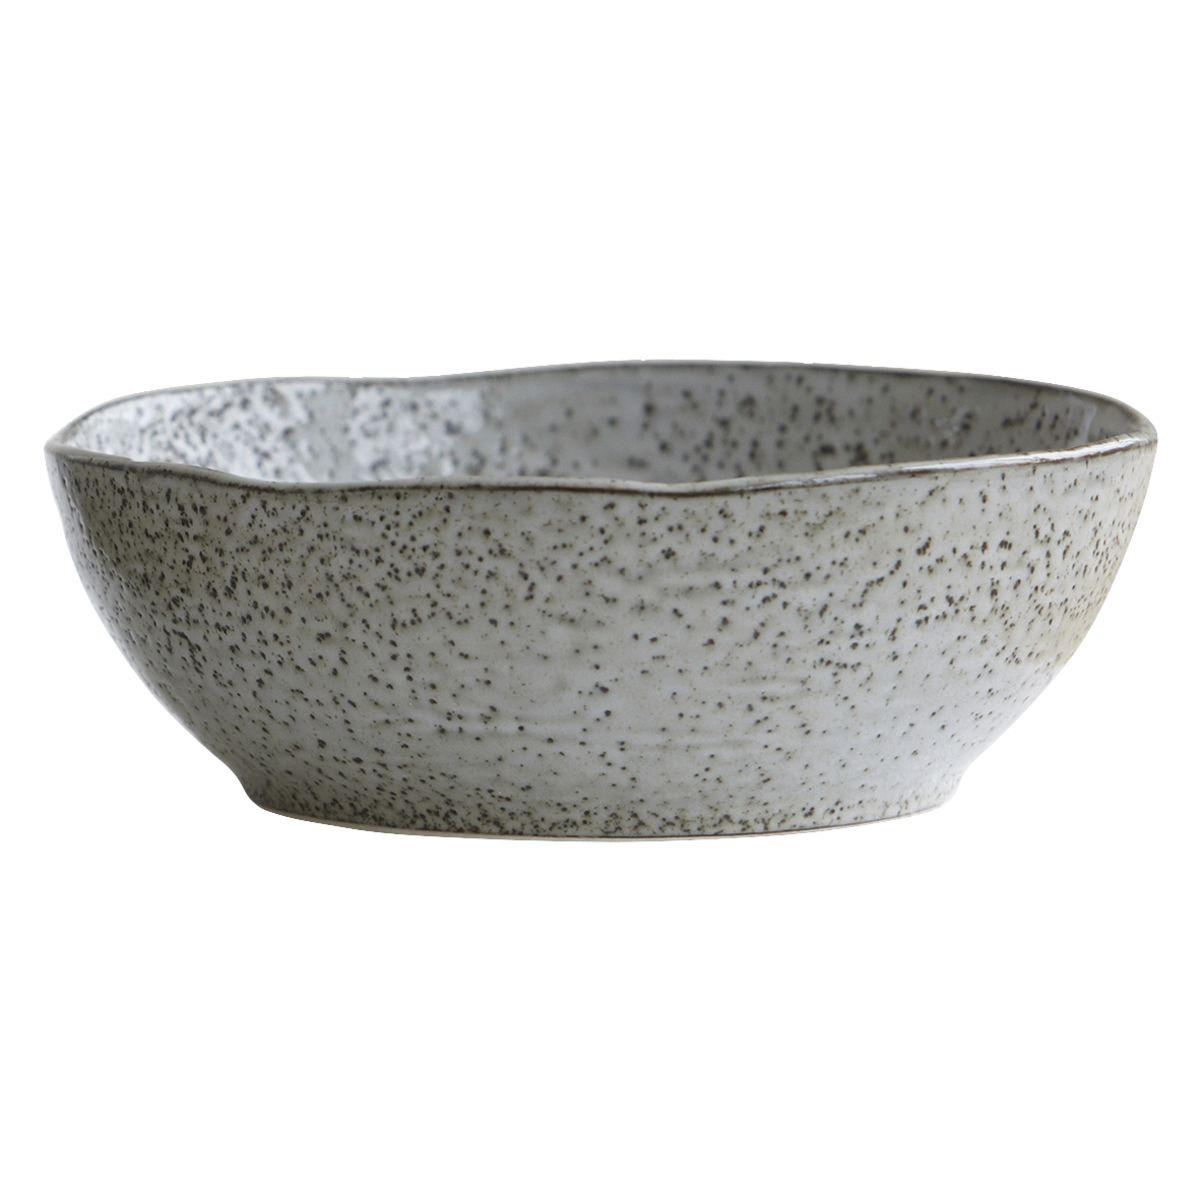 House Doctor Rustic Bowl